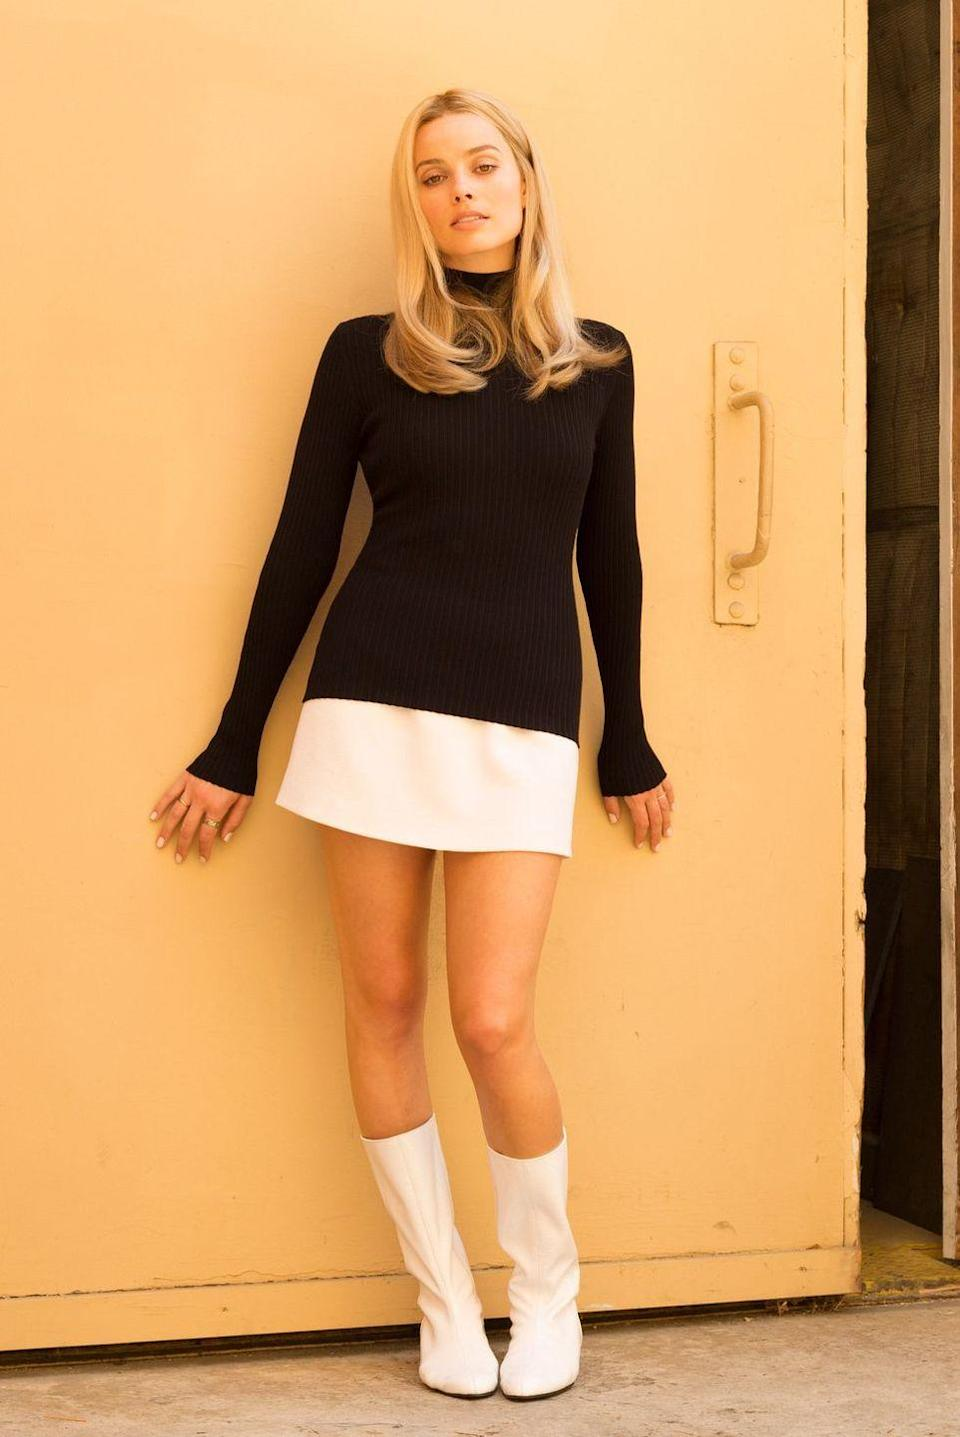 """<p>When actress Margot Robbie teased her role as Sharon Tate on <a href=""""https://www.instagram.com/p/BmJACWgnwaW/"""" rel=""""nofollow noopener"""" target=""""_blank"""" data-ylk=""""slk:Instagram"""" class=""""link rapid-noclick-resp"""">Instagram</a>, we were instantly transported to the '60s thanks to her amazing white go-go boots.</p>"""